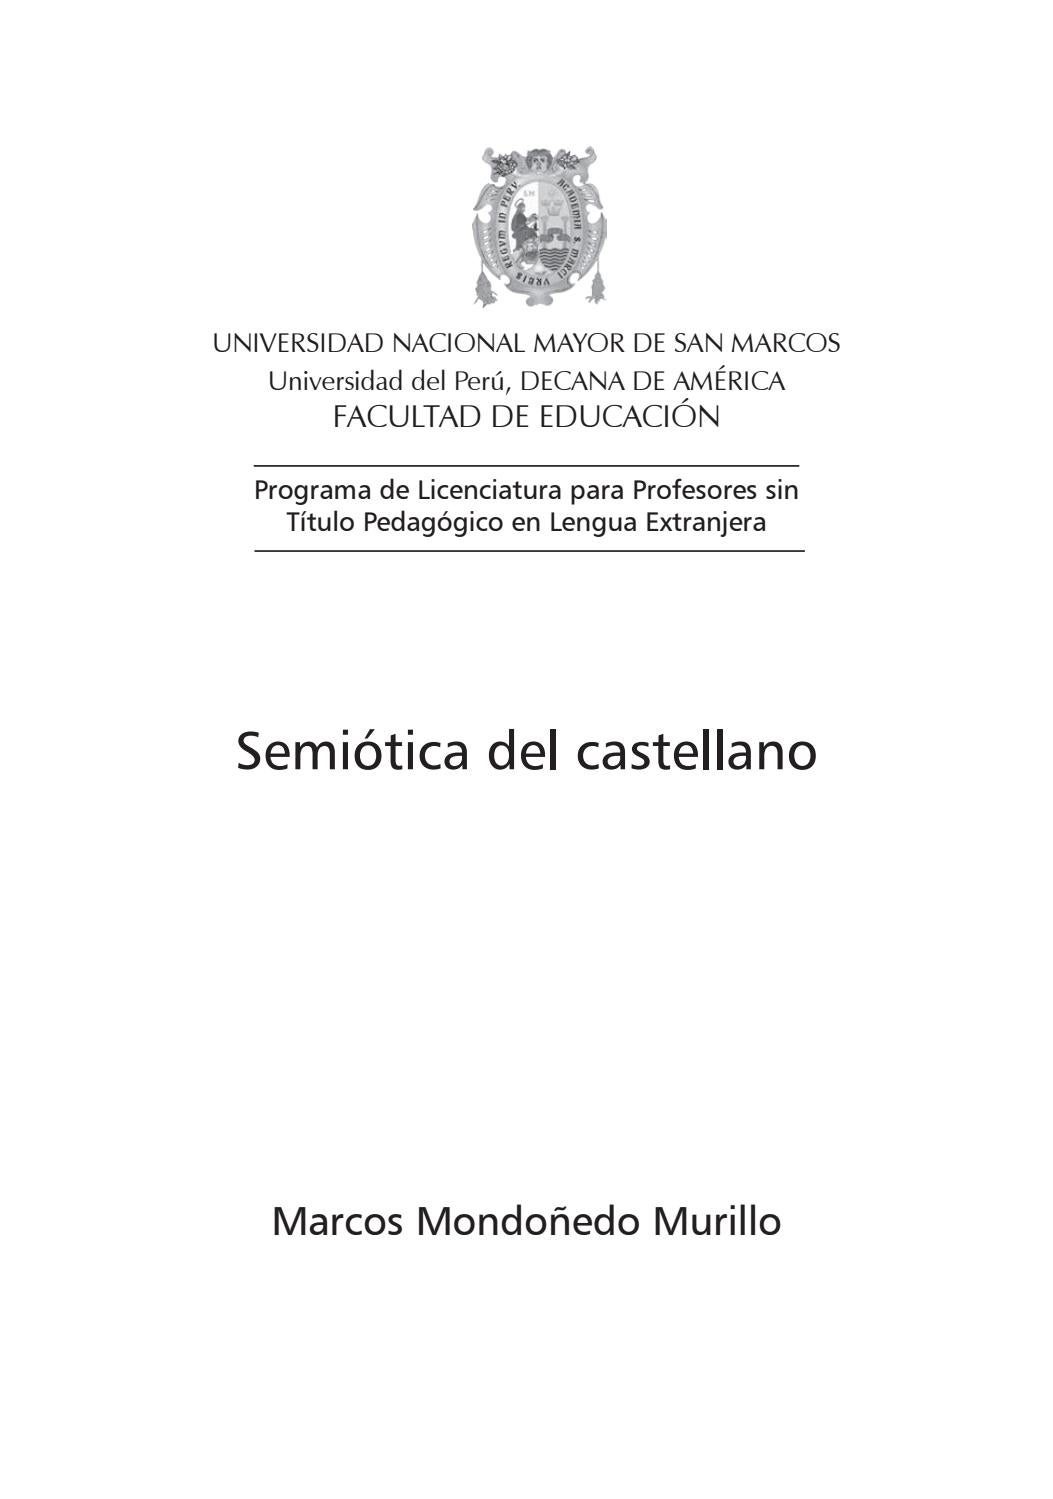 Semiotica del castellano by UNMSM-PROLEX - issuu